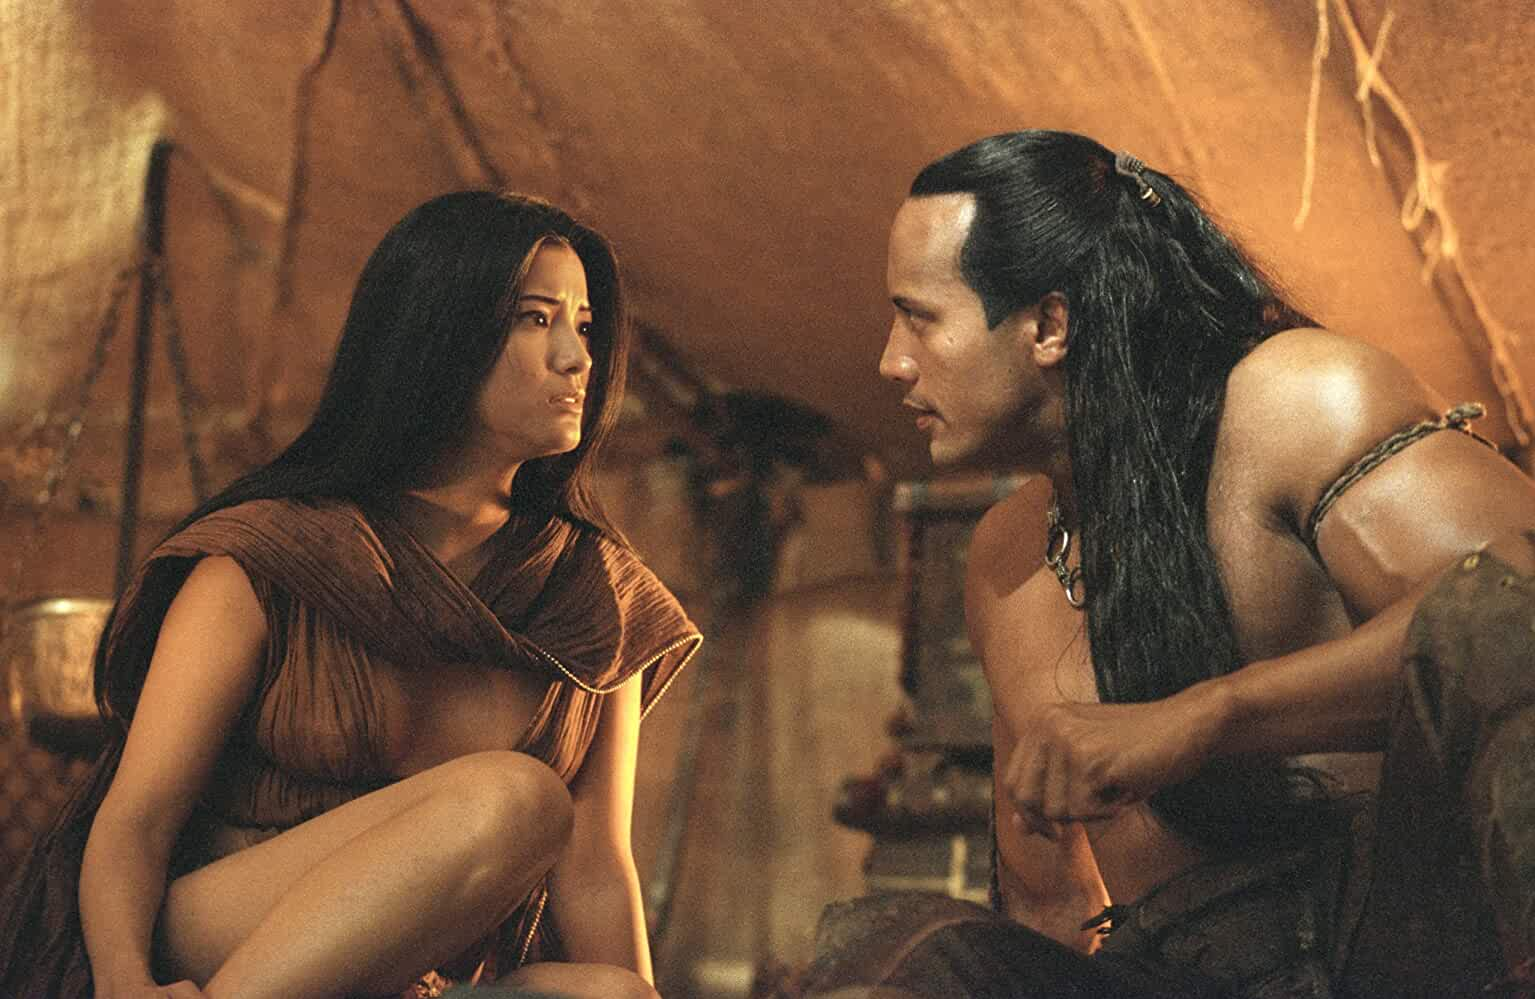 Kelly Hu and Dwayne Johnson in The Scorpion King (2002)